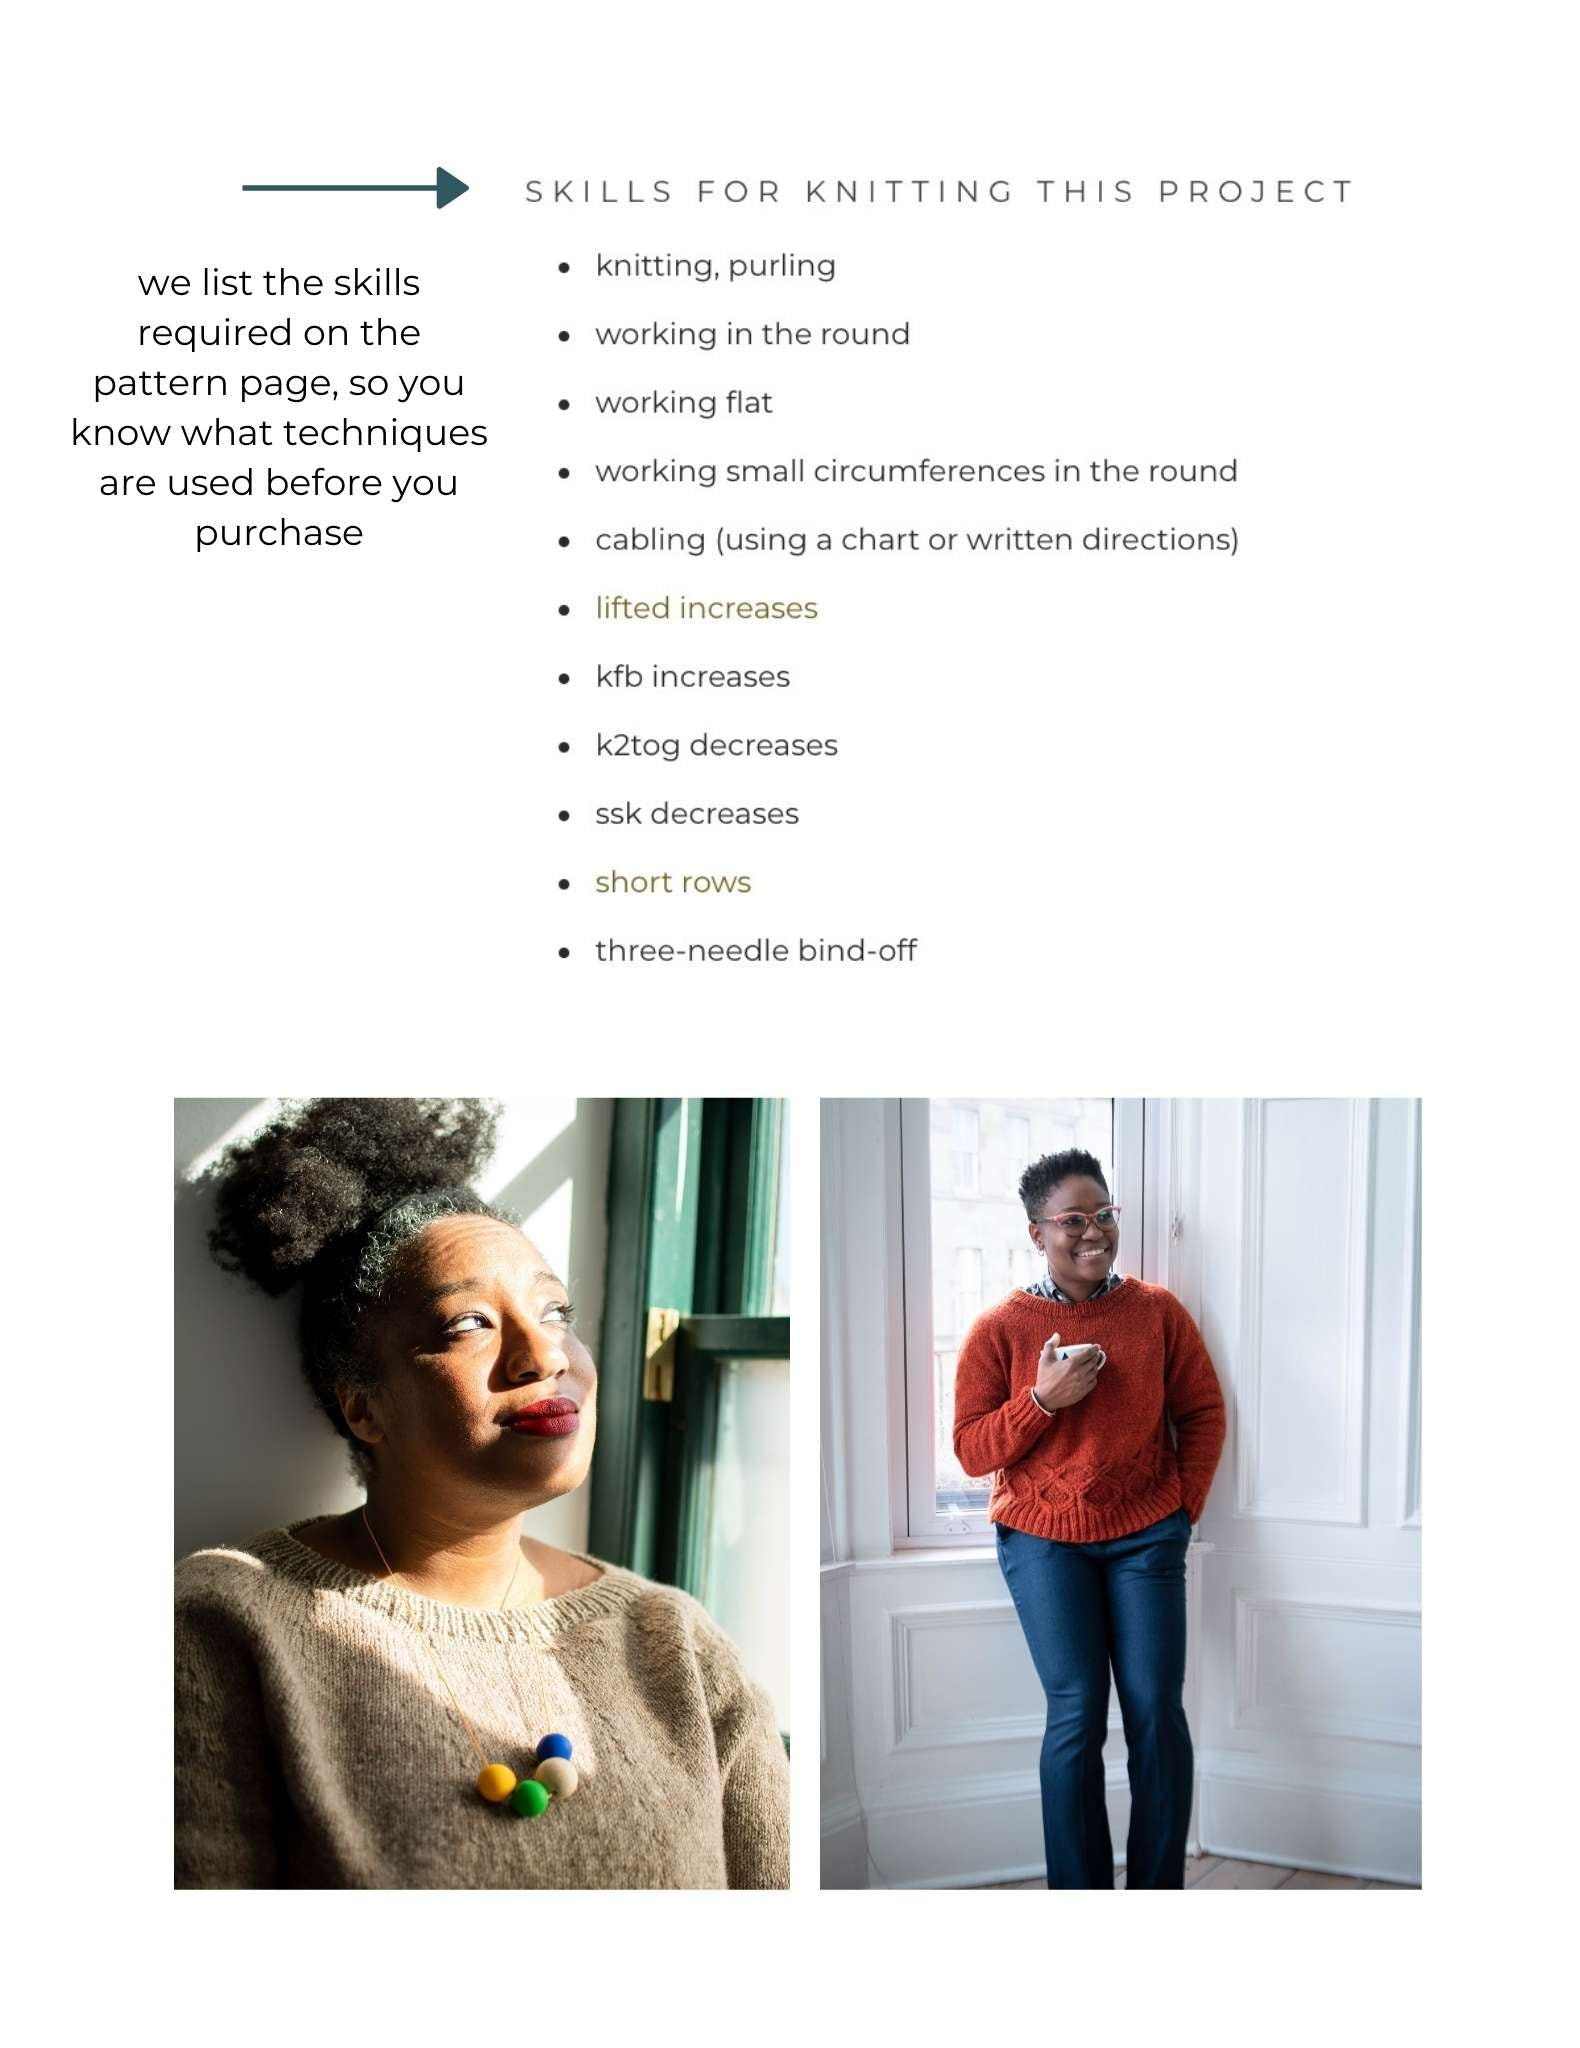 a screenshot showing the skills needed to complete a knitting pattern, and underneath two images of black women wearing the sweater design. One is looking out of a window wearing a pale neutral sweater and chunky necklace, the other stands next to a window wearing an orange sweater.